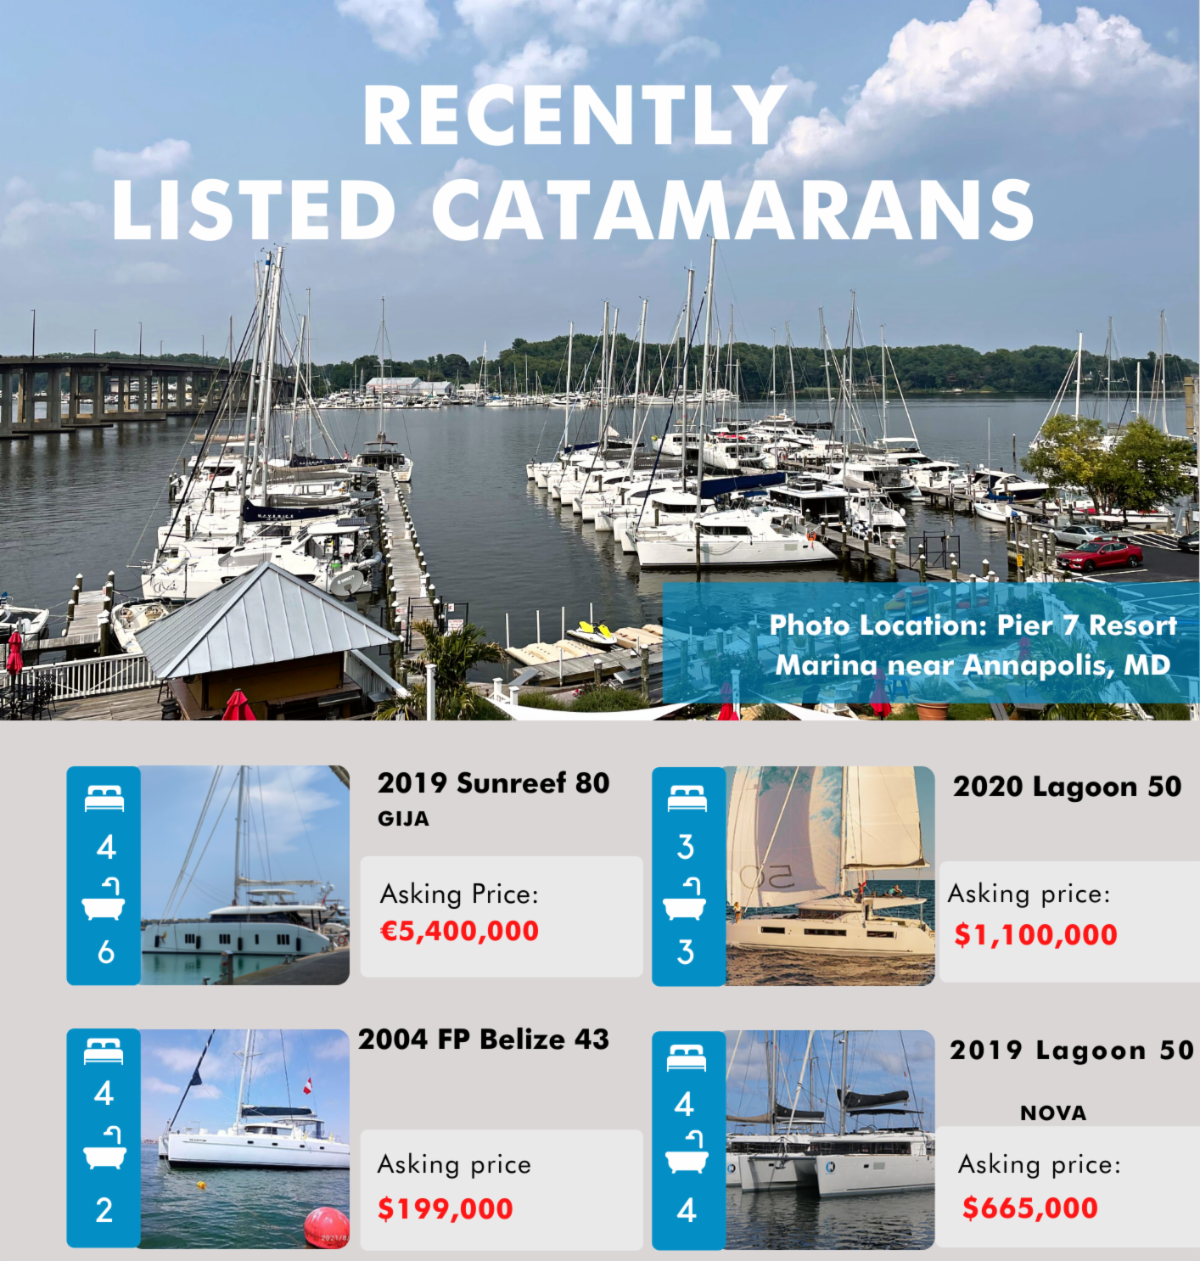 Latest Listings & Price Cuts   Sunreef, Fountaine Pajot, Lagoon   Open House at Pier 7 Marina